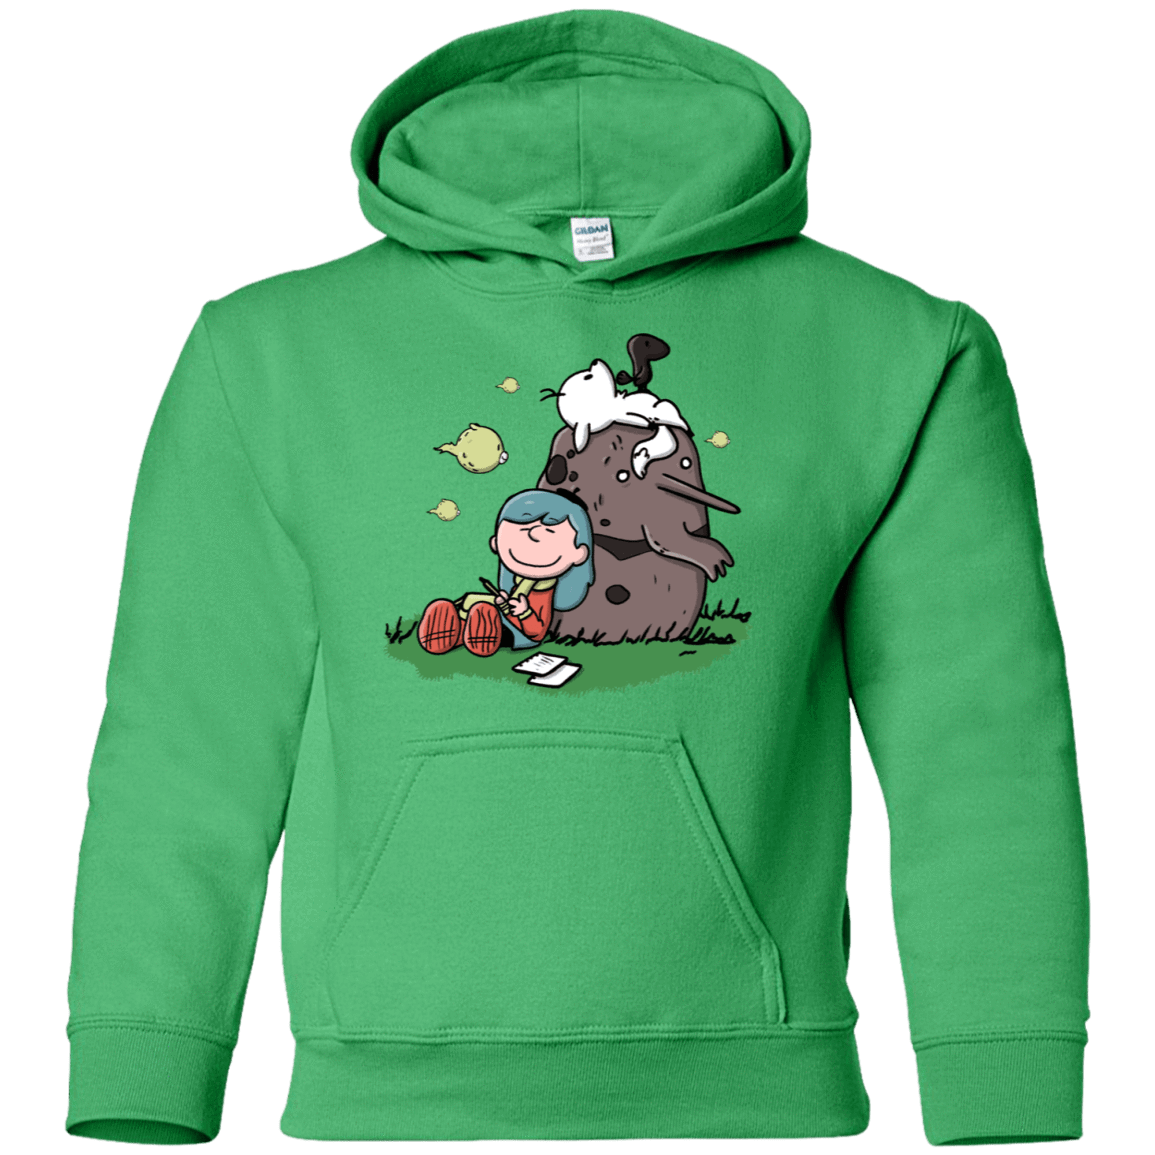 Sweatshirts Irish Green / YS Hilda Brown Youth Hoodie